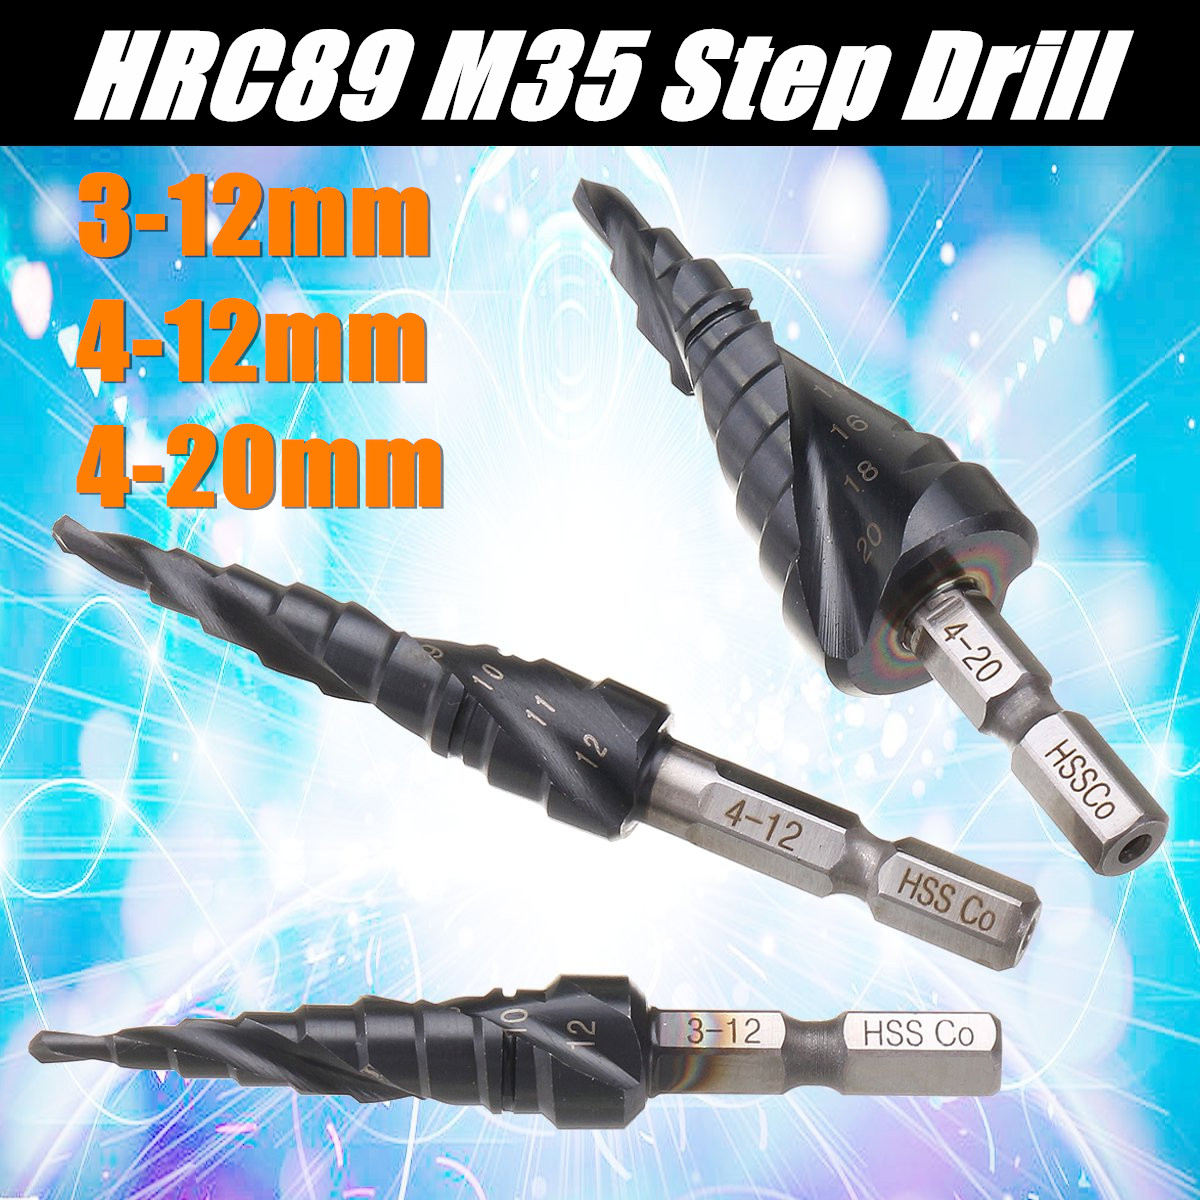 Drillpro 3-12/4-12/4-20mm HRC89 HSS-Co M35 Cobalt Step Drill Bit TiAlN Coated Step Drill 1/4 Inch Hex Shank Woodworking Bits